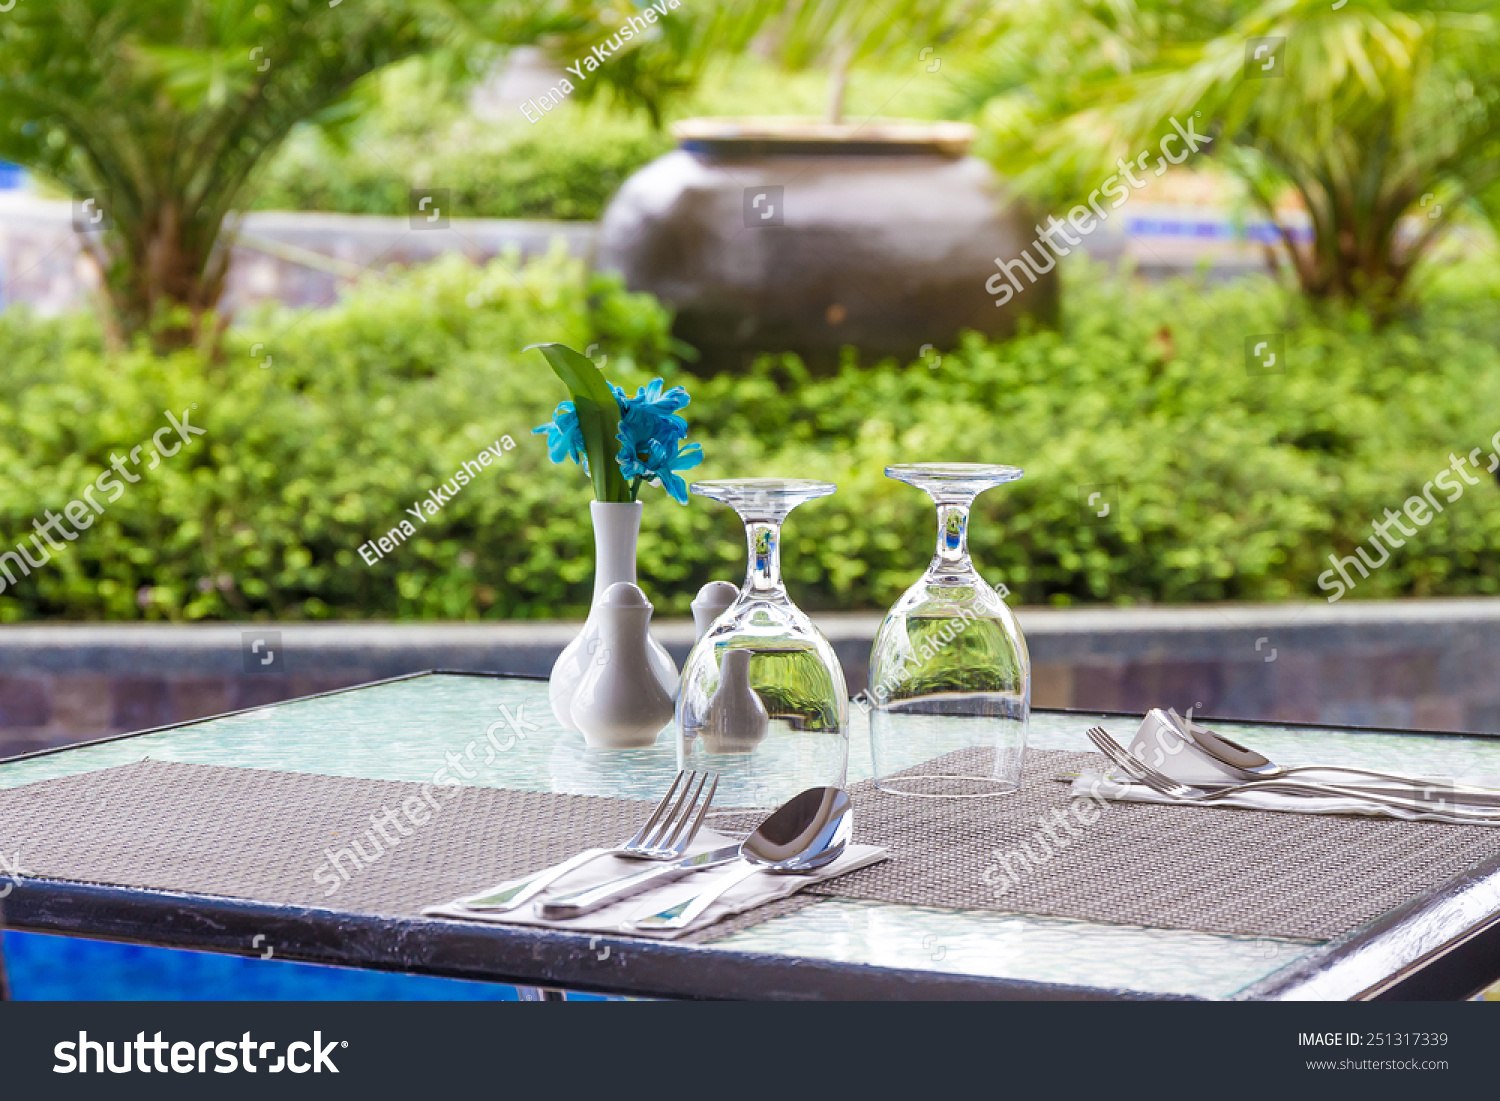 Restaurant table setup - Table Setup In Outdoor Cafe Small Restaurant At Hotel Poolside Summer Vacations Meal